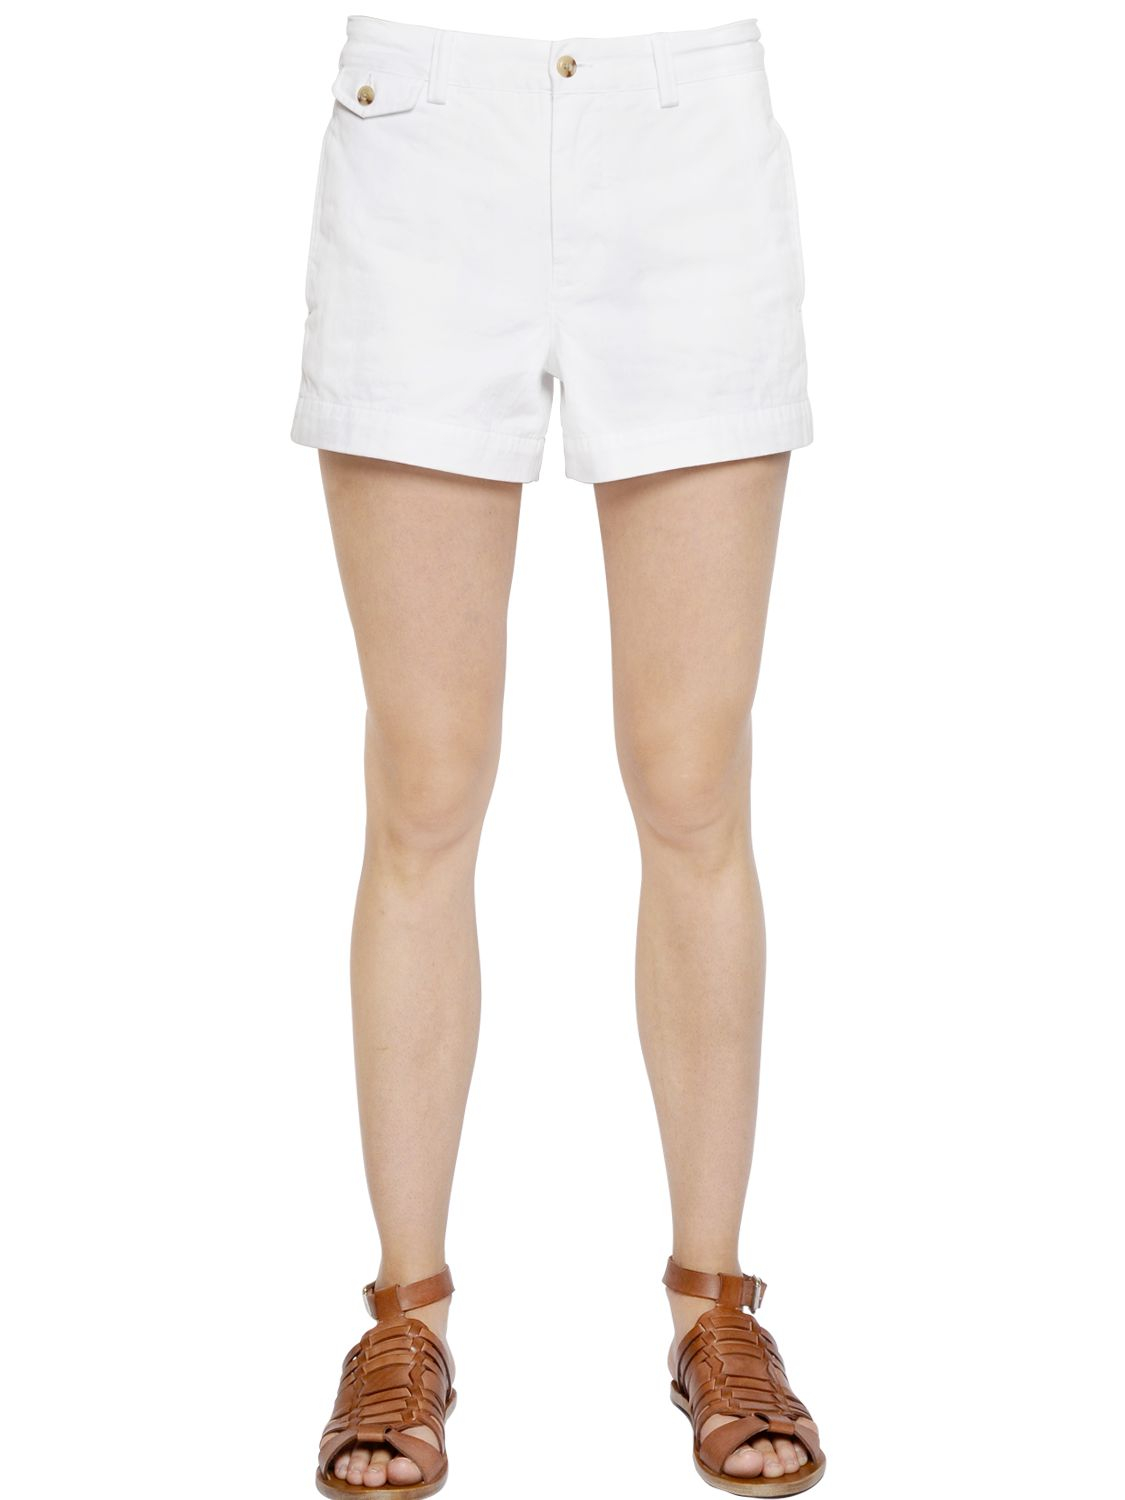 Polo ralph lauren Cotton Chino Shorts in White | Lyst